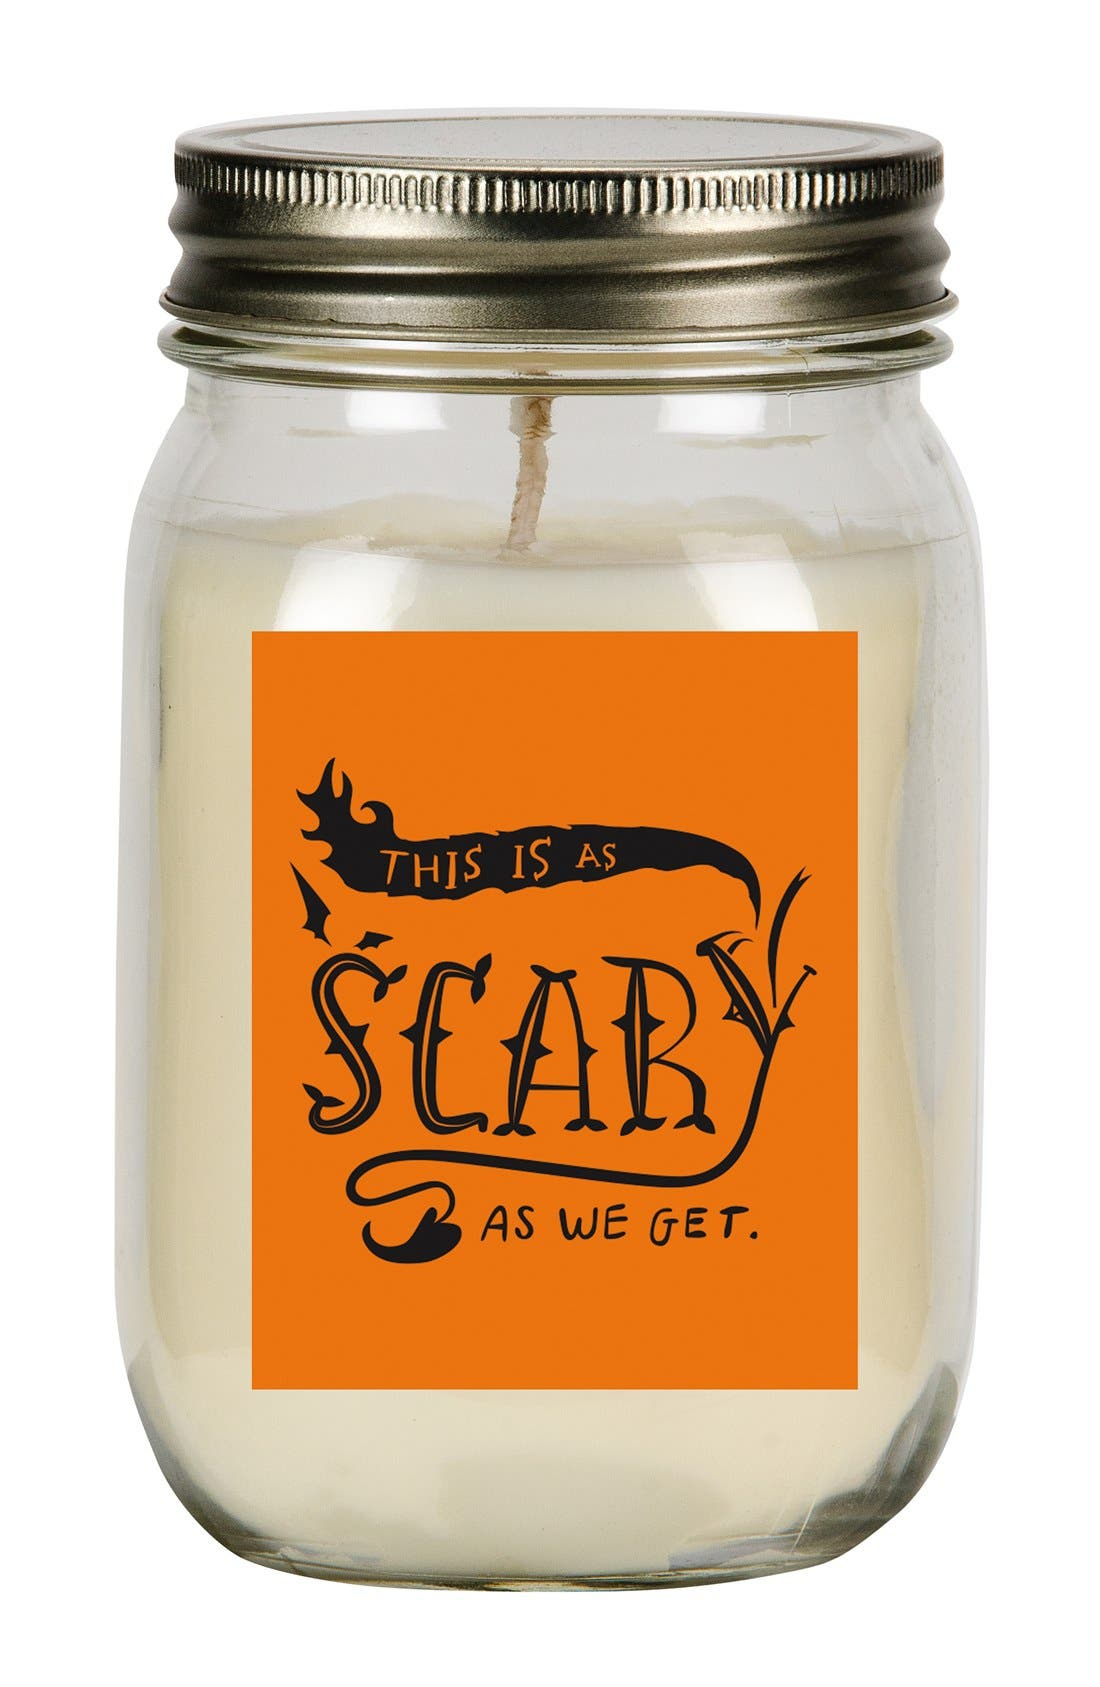 Alternate Image 1 Selected - Primitives by Kathy 'As Scary As We Get' Mason Jar Candle